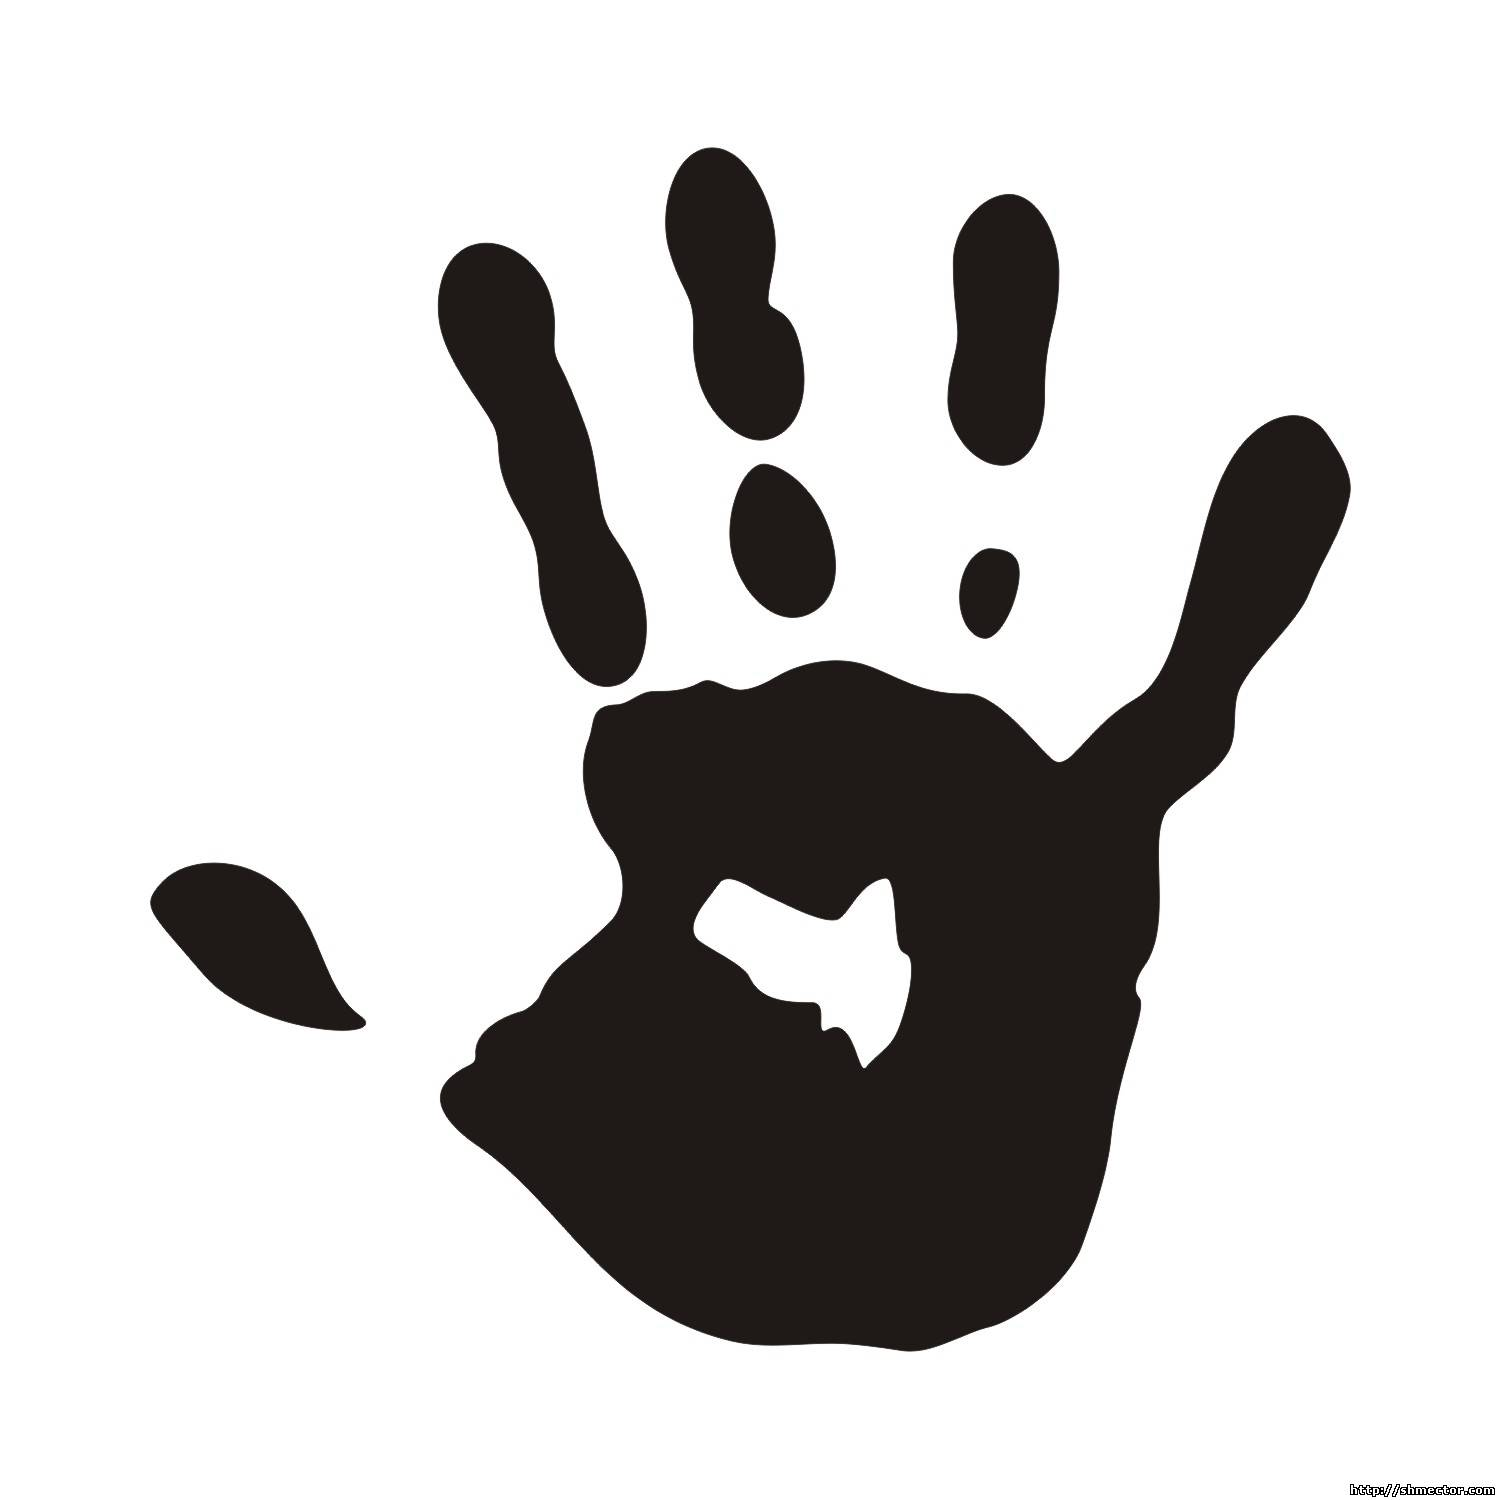 vector for free use print of a hand handprint vector art hand print vector image